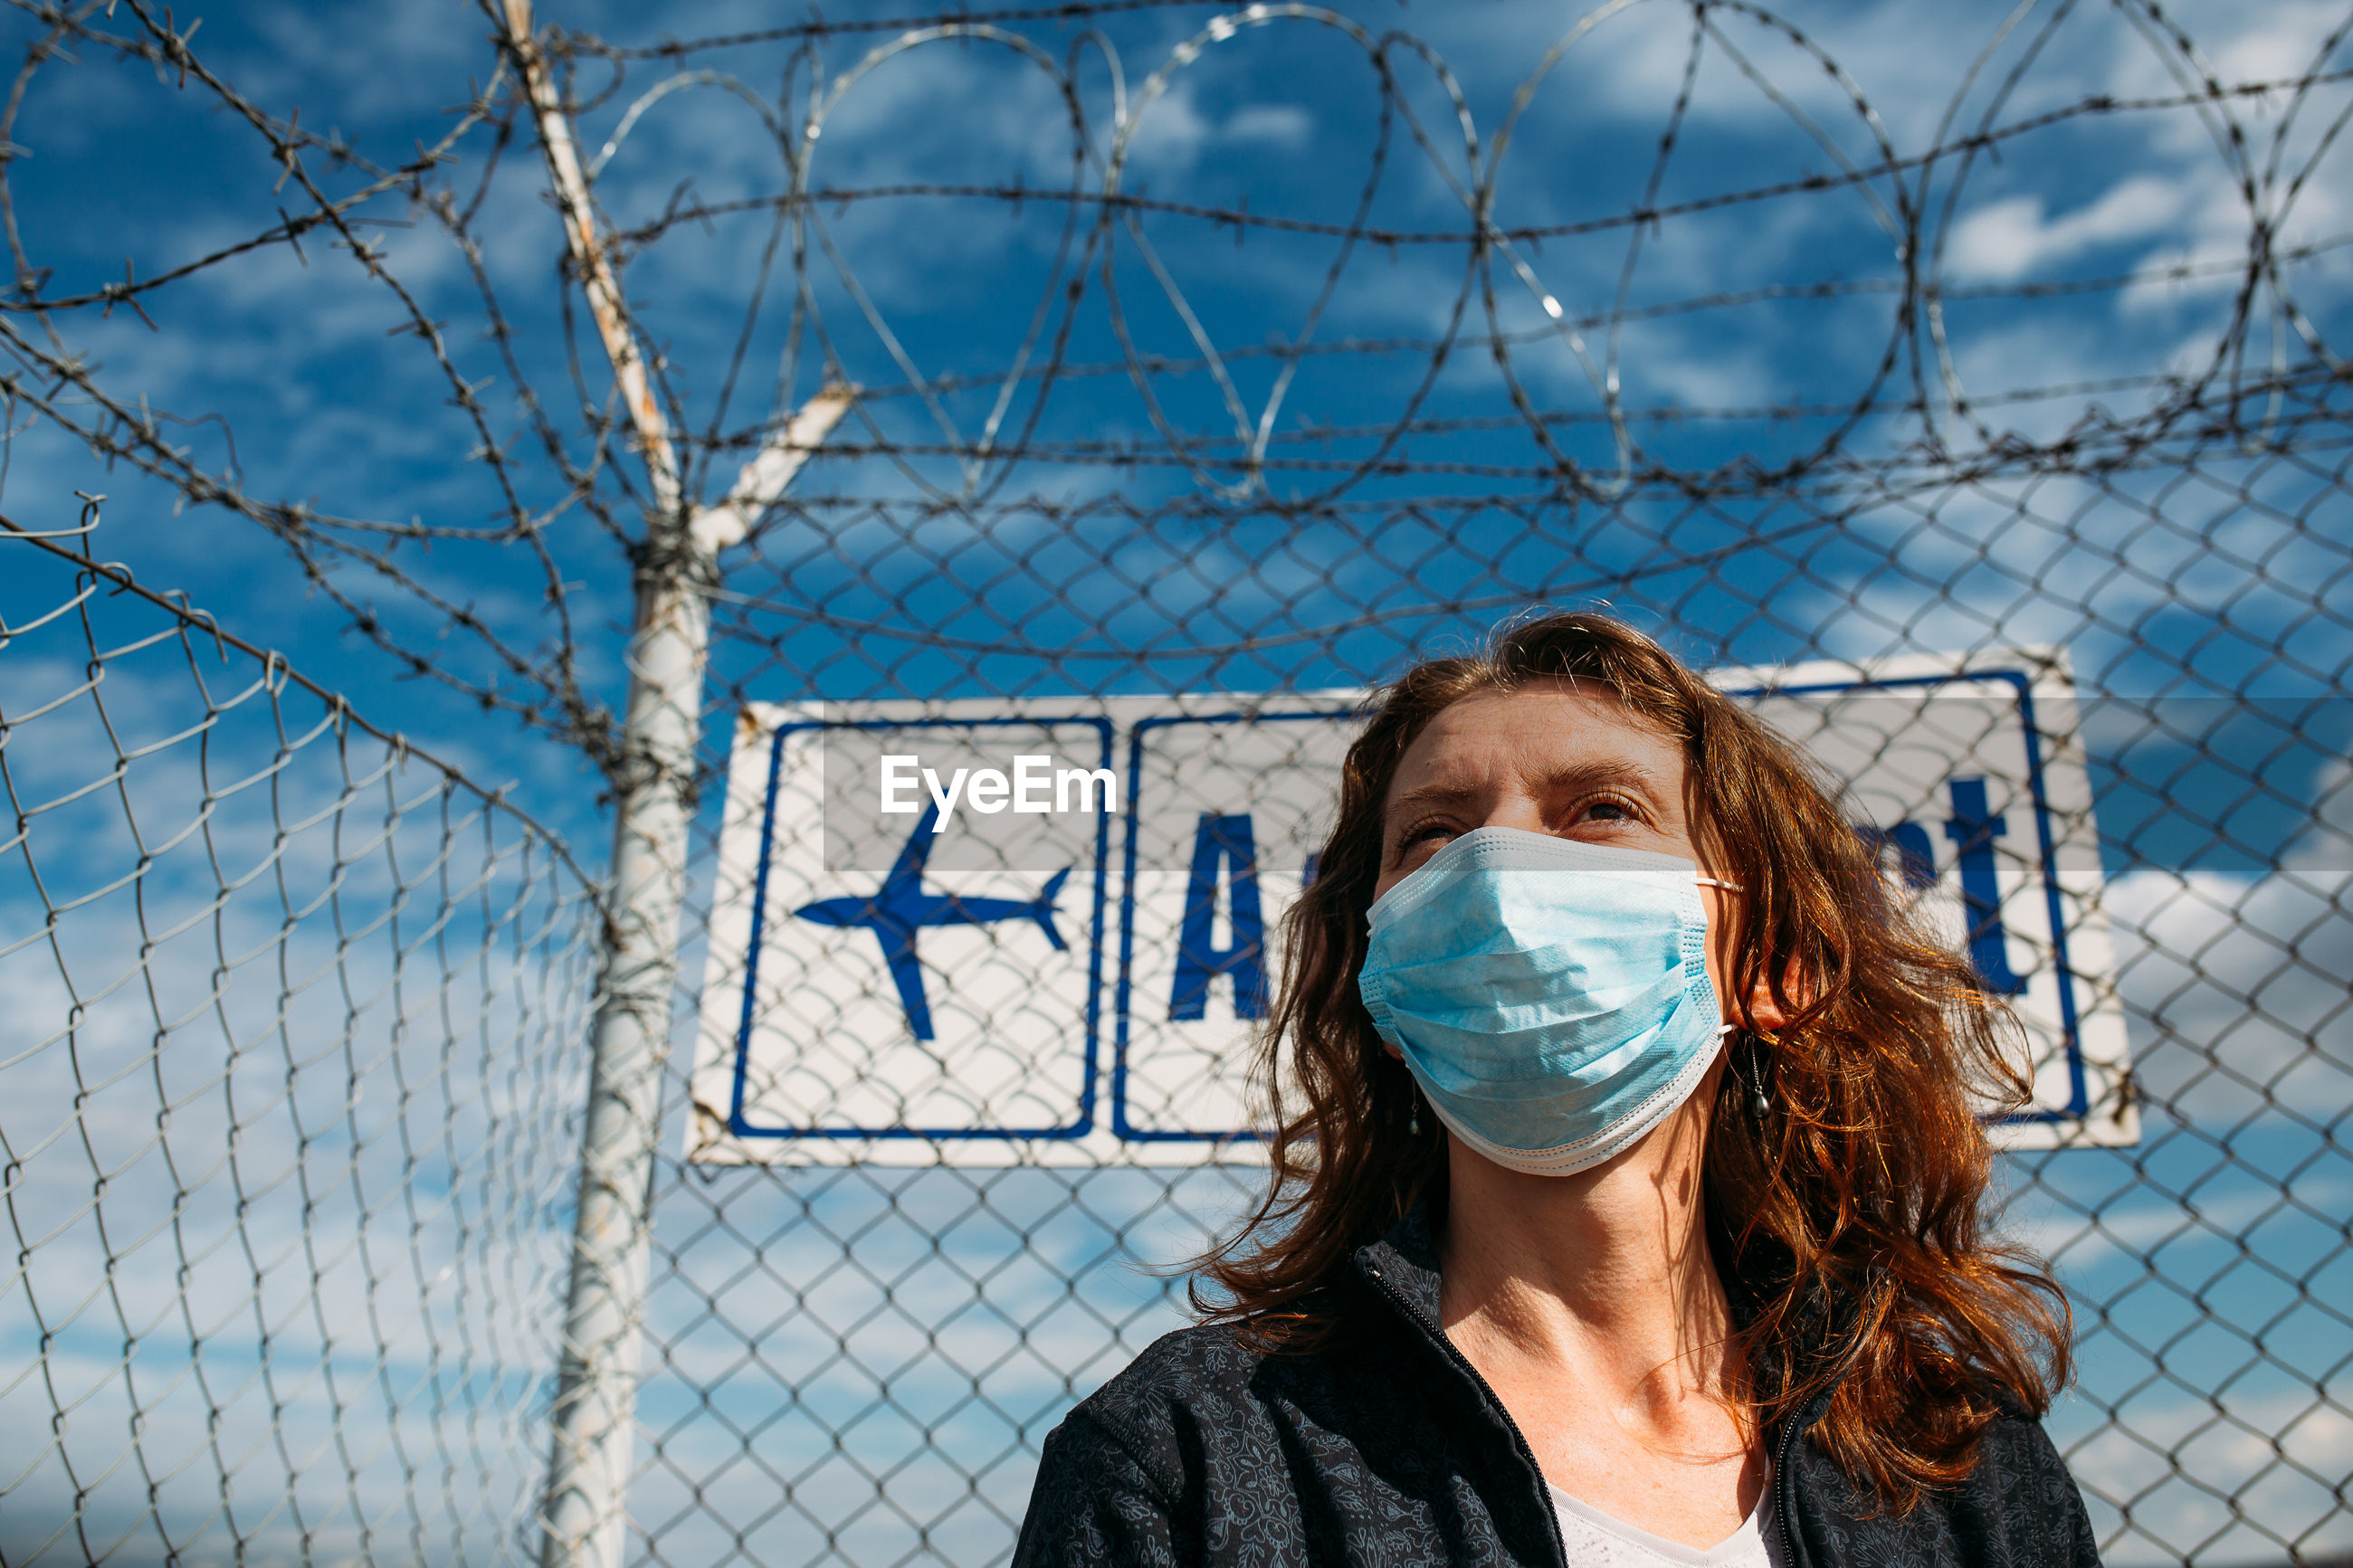 Woman wearing mask while standing by chainlink fence